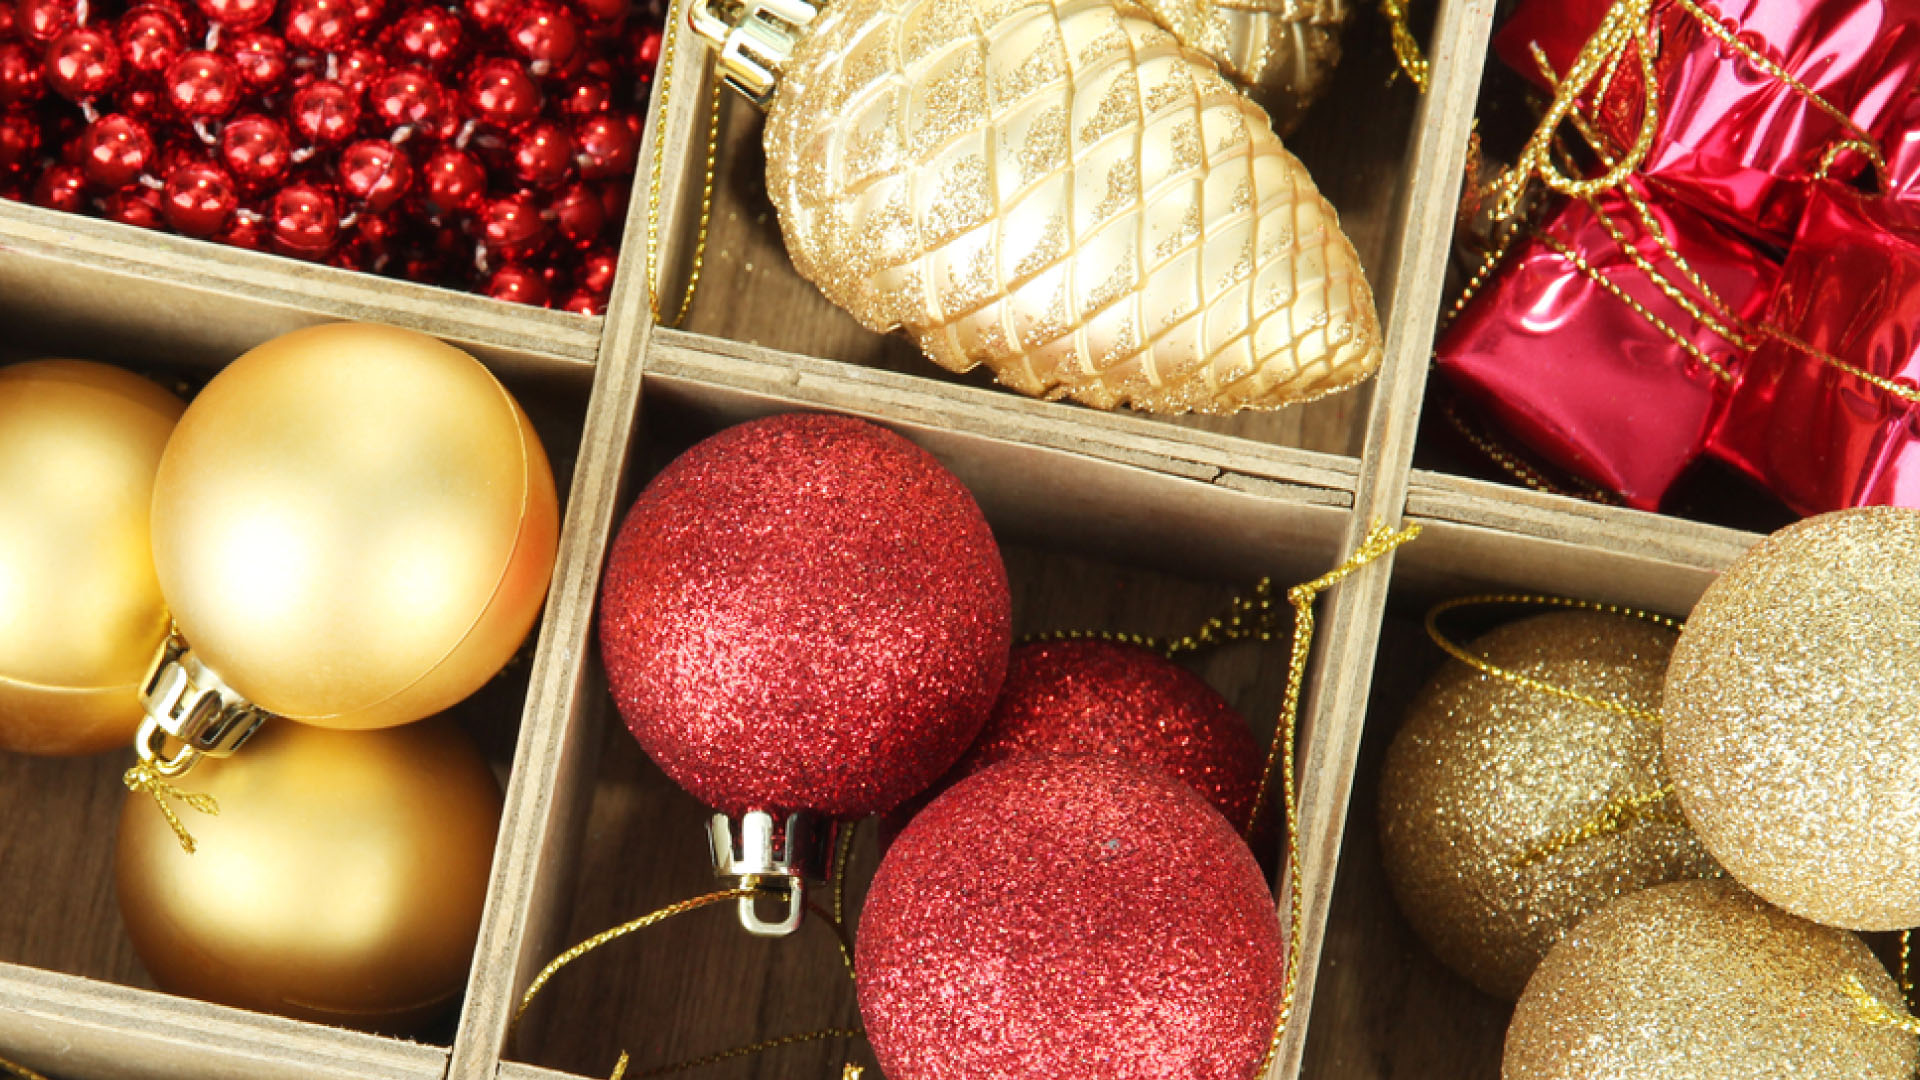 Self Storage: Easier Way to Store Christmas Decorations